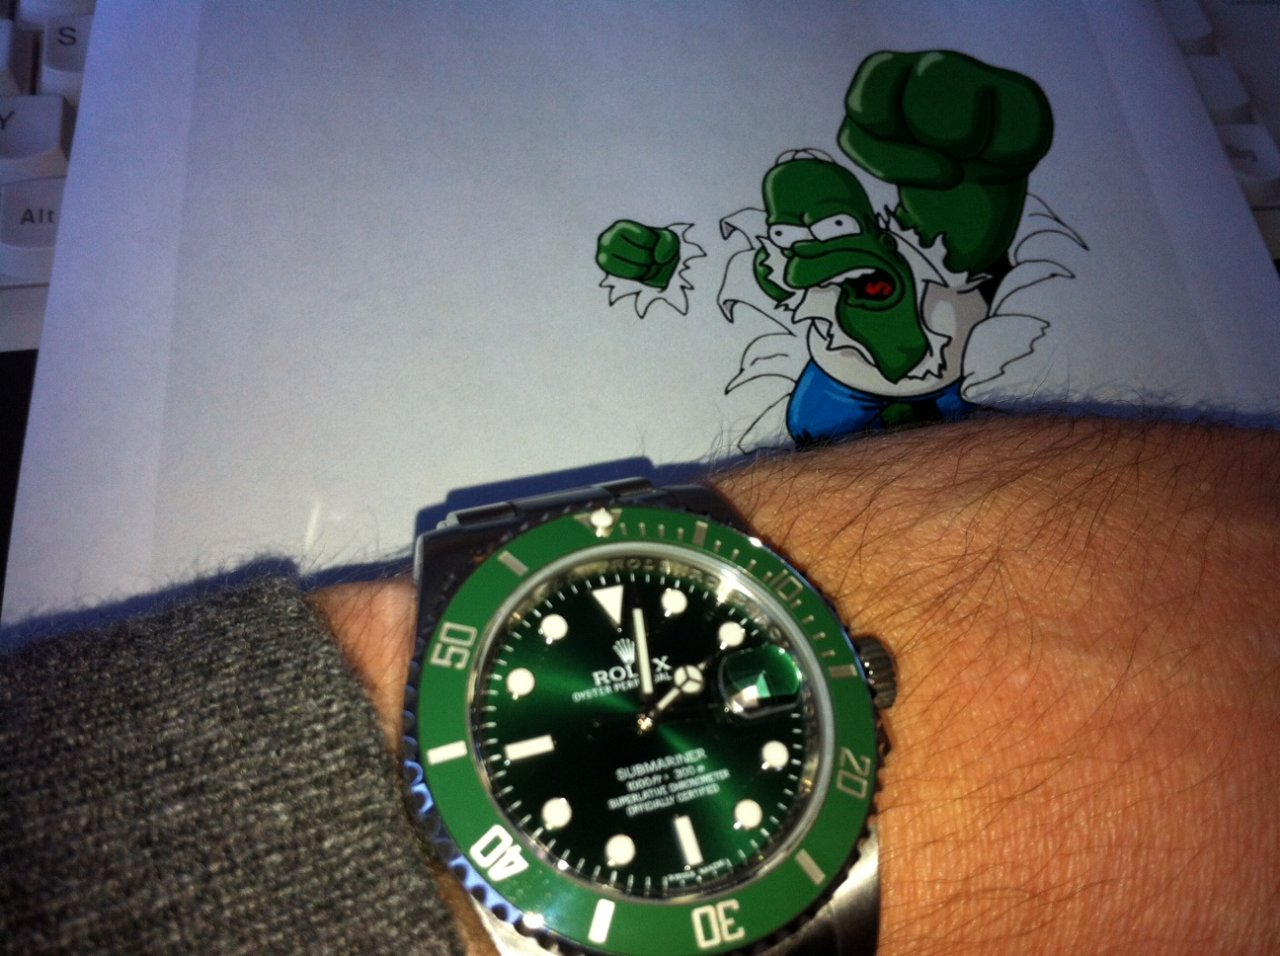 https://uhrforum.de/attachments/339620d1323868026-gruen-gruen-gruen-ist-alles-was-ich-hab-rolex-submariner-116610lv-hulk-mit-hulk.jpg